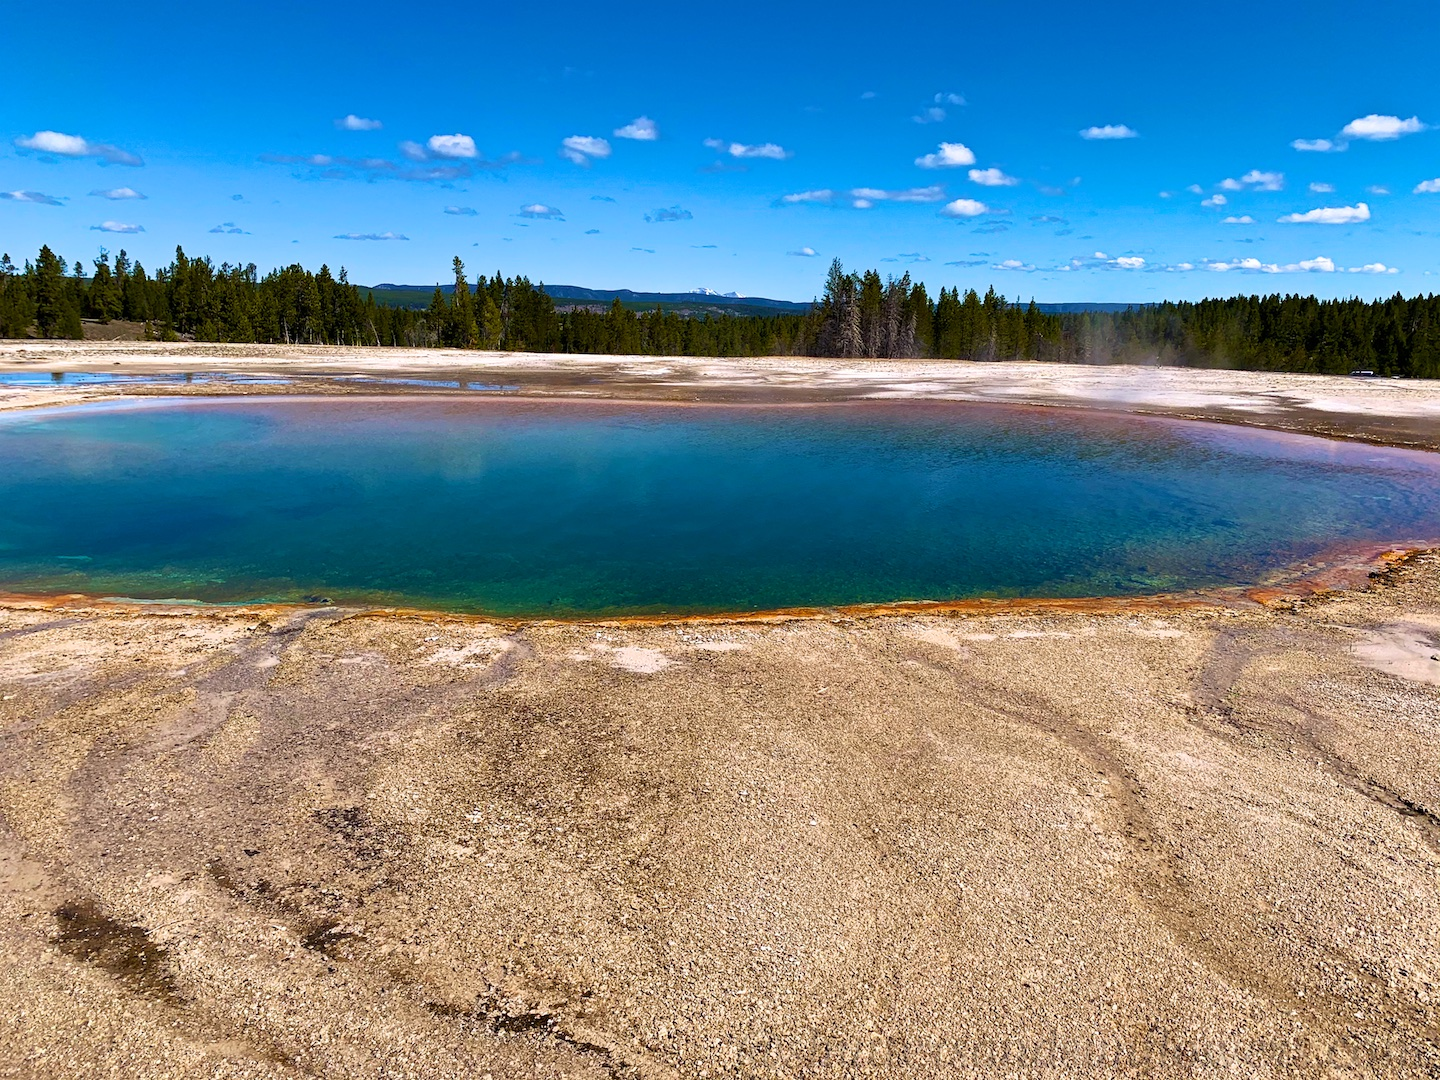 Turquoise Pool at Midway Geyser Basin, Yellowstone National Park, USA